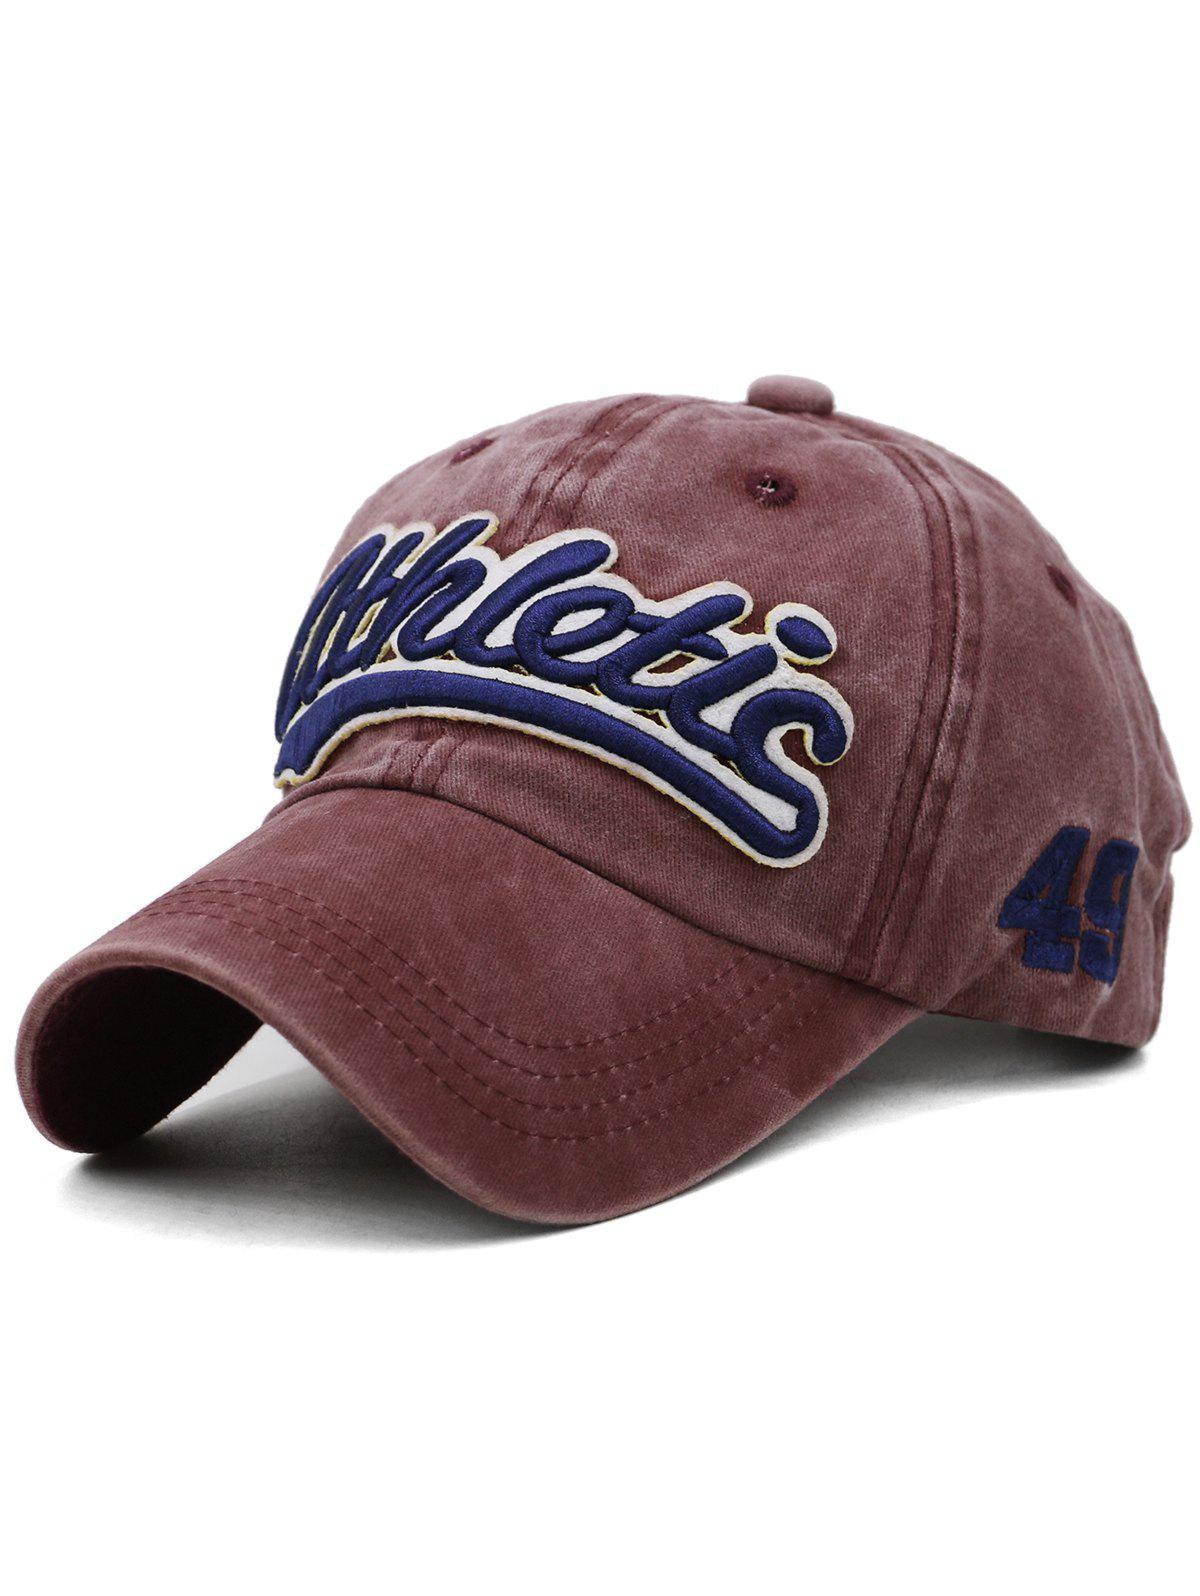 Best Letter  Embroidered Washed Dyed Trucker Hat